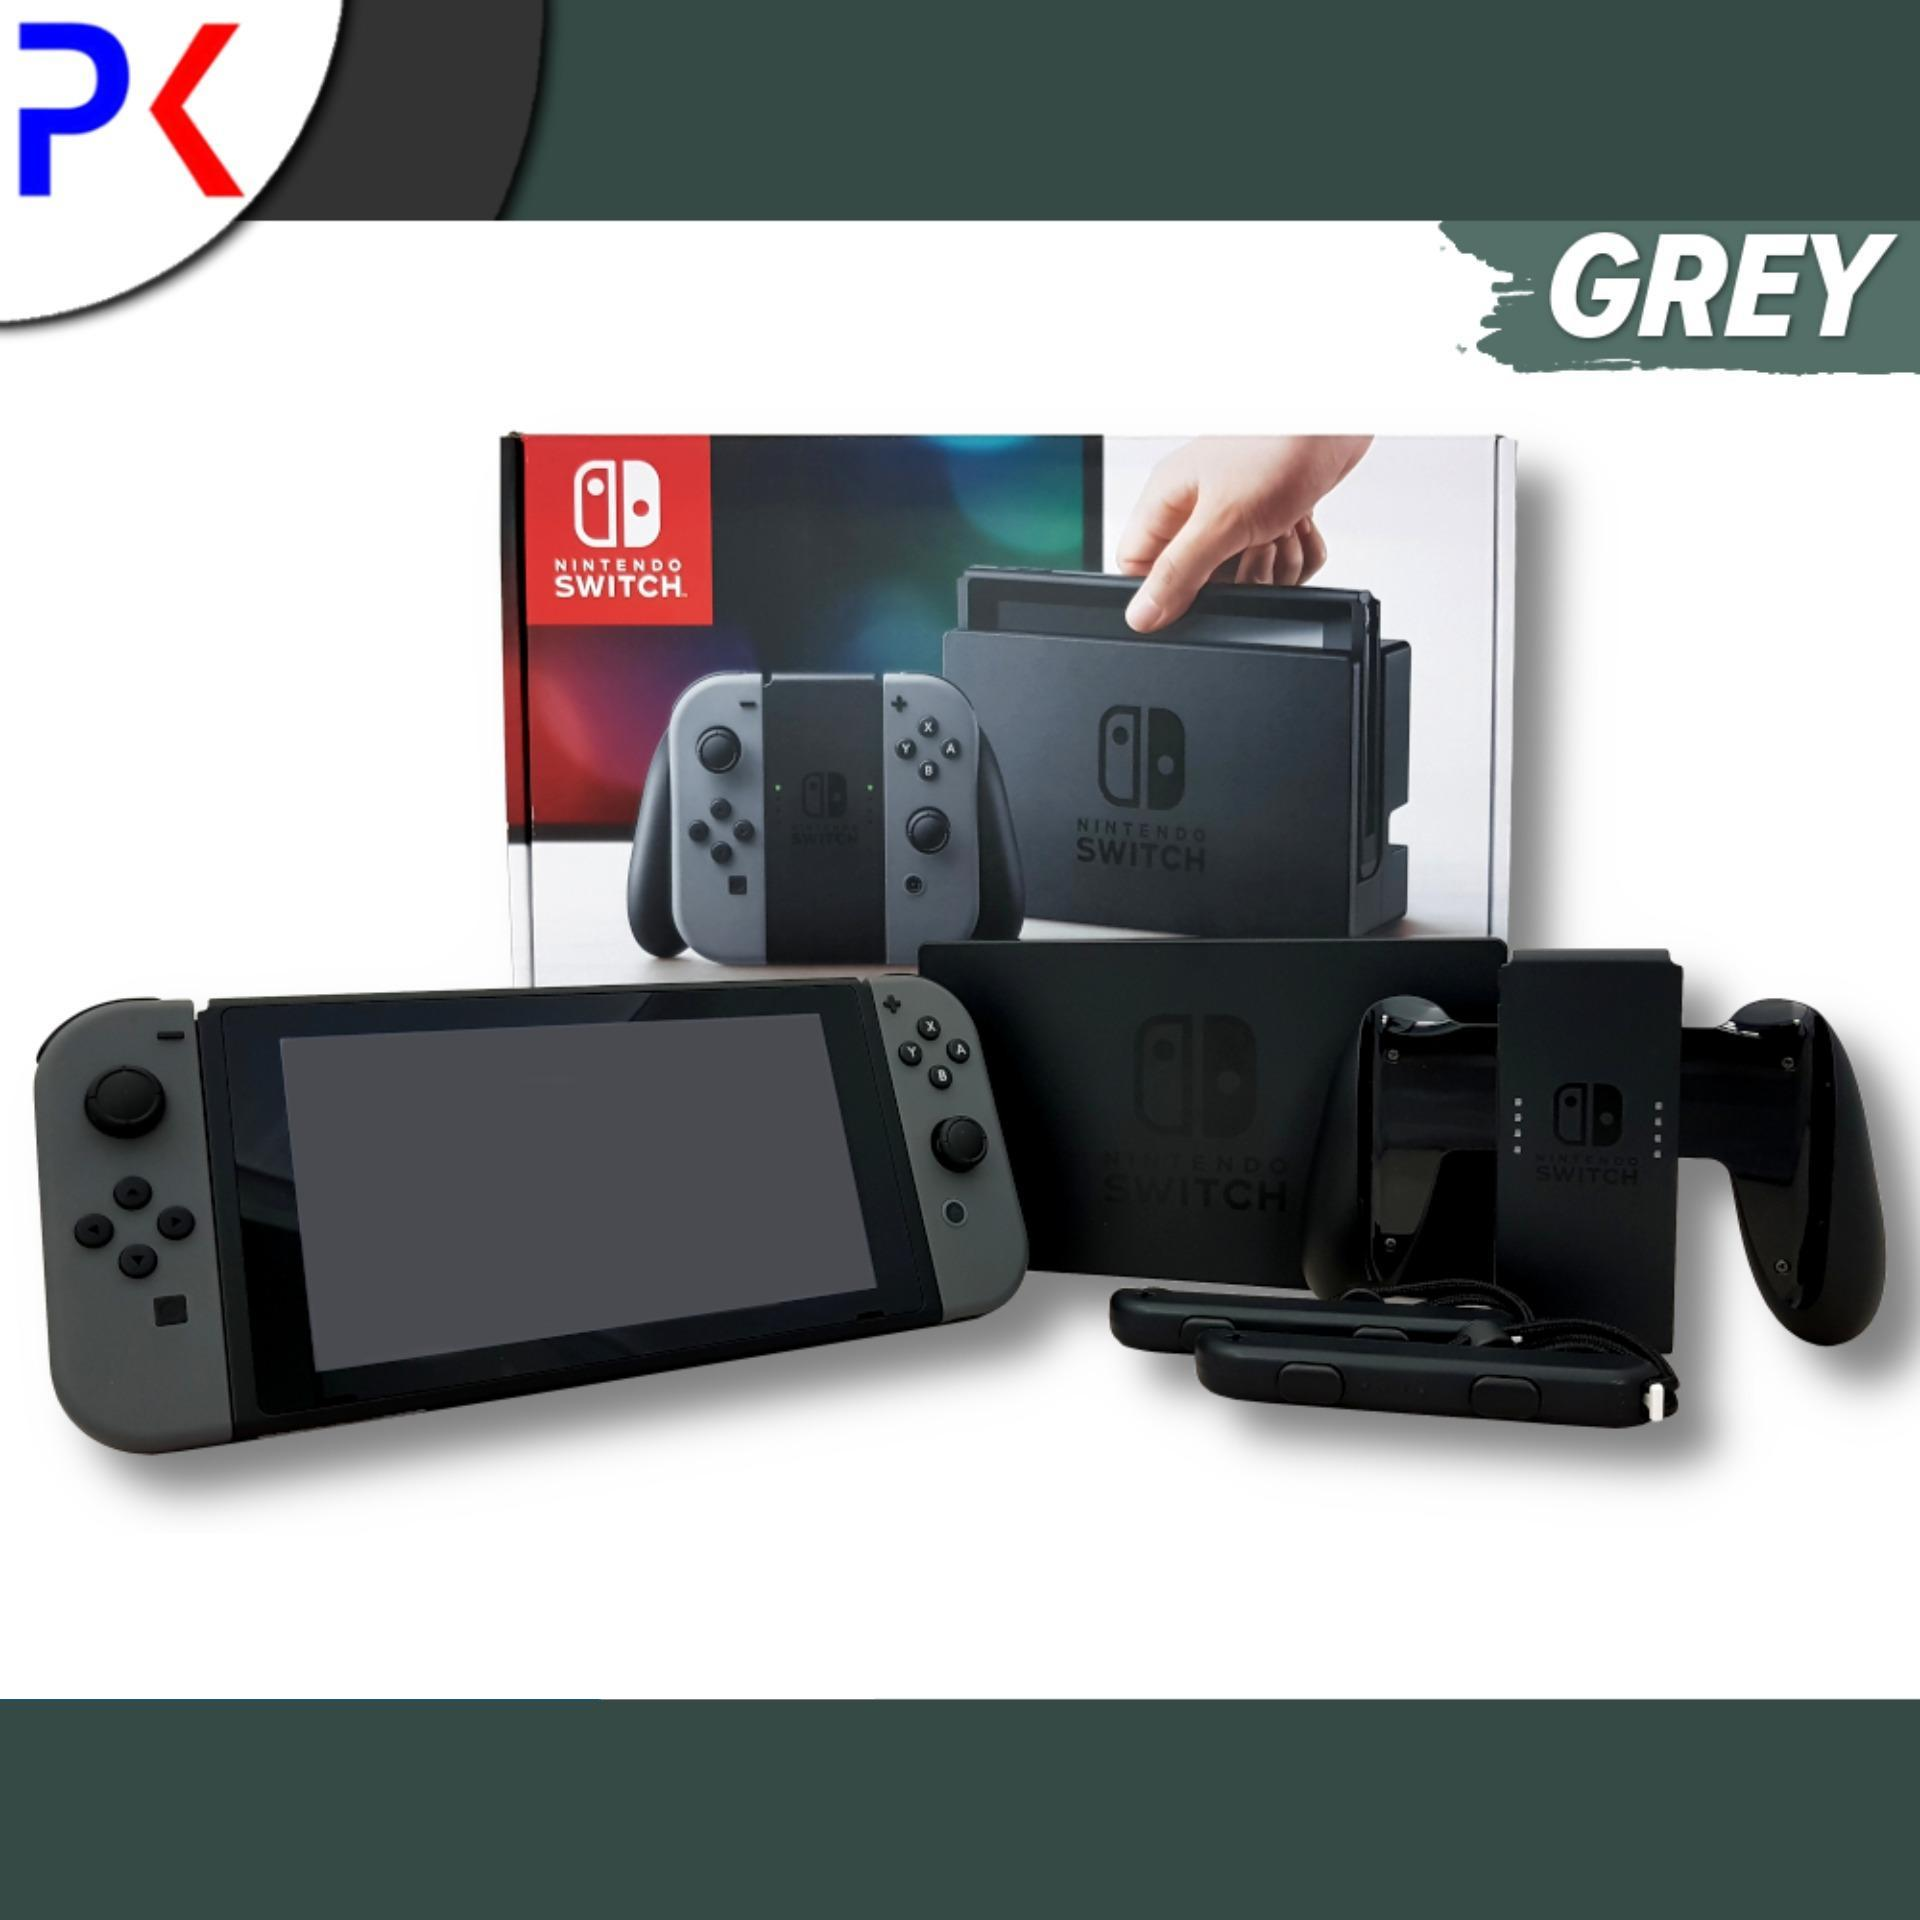 Nintendo Switch Console With Grey Joy-Con By Peppkouri.